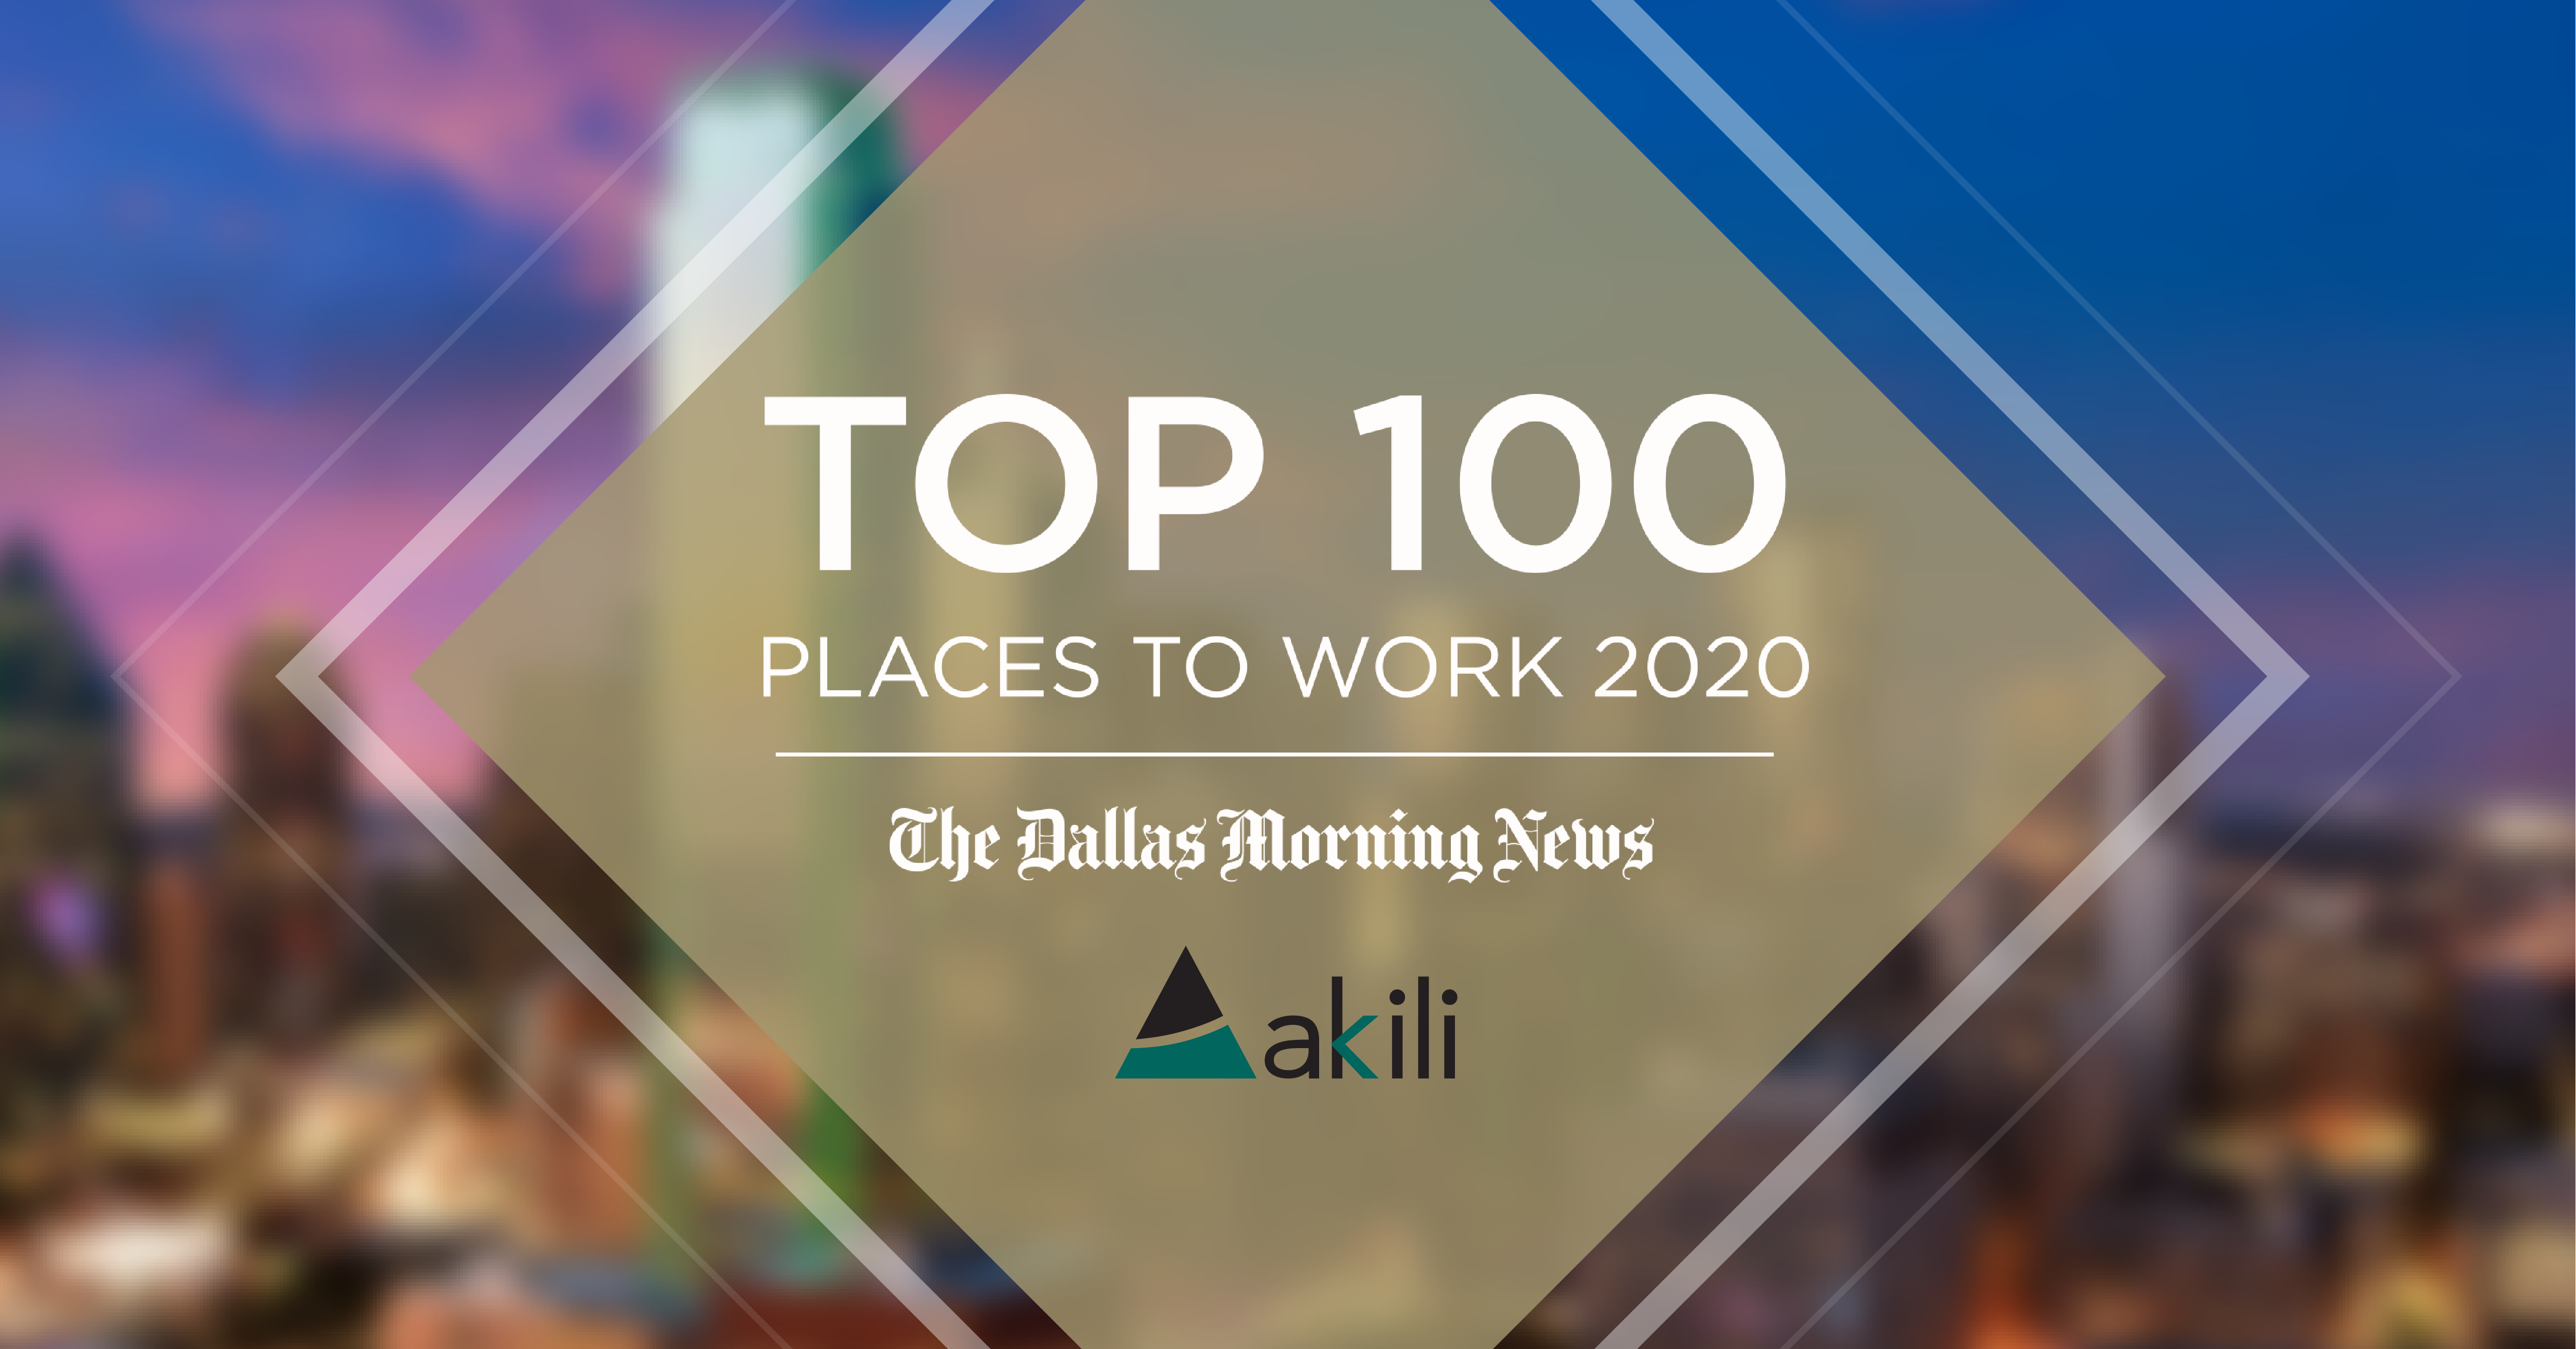 Akili Recognized in Top 100 Places to Work 2020